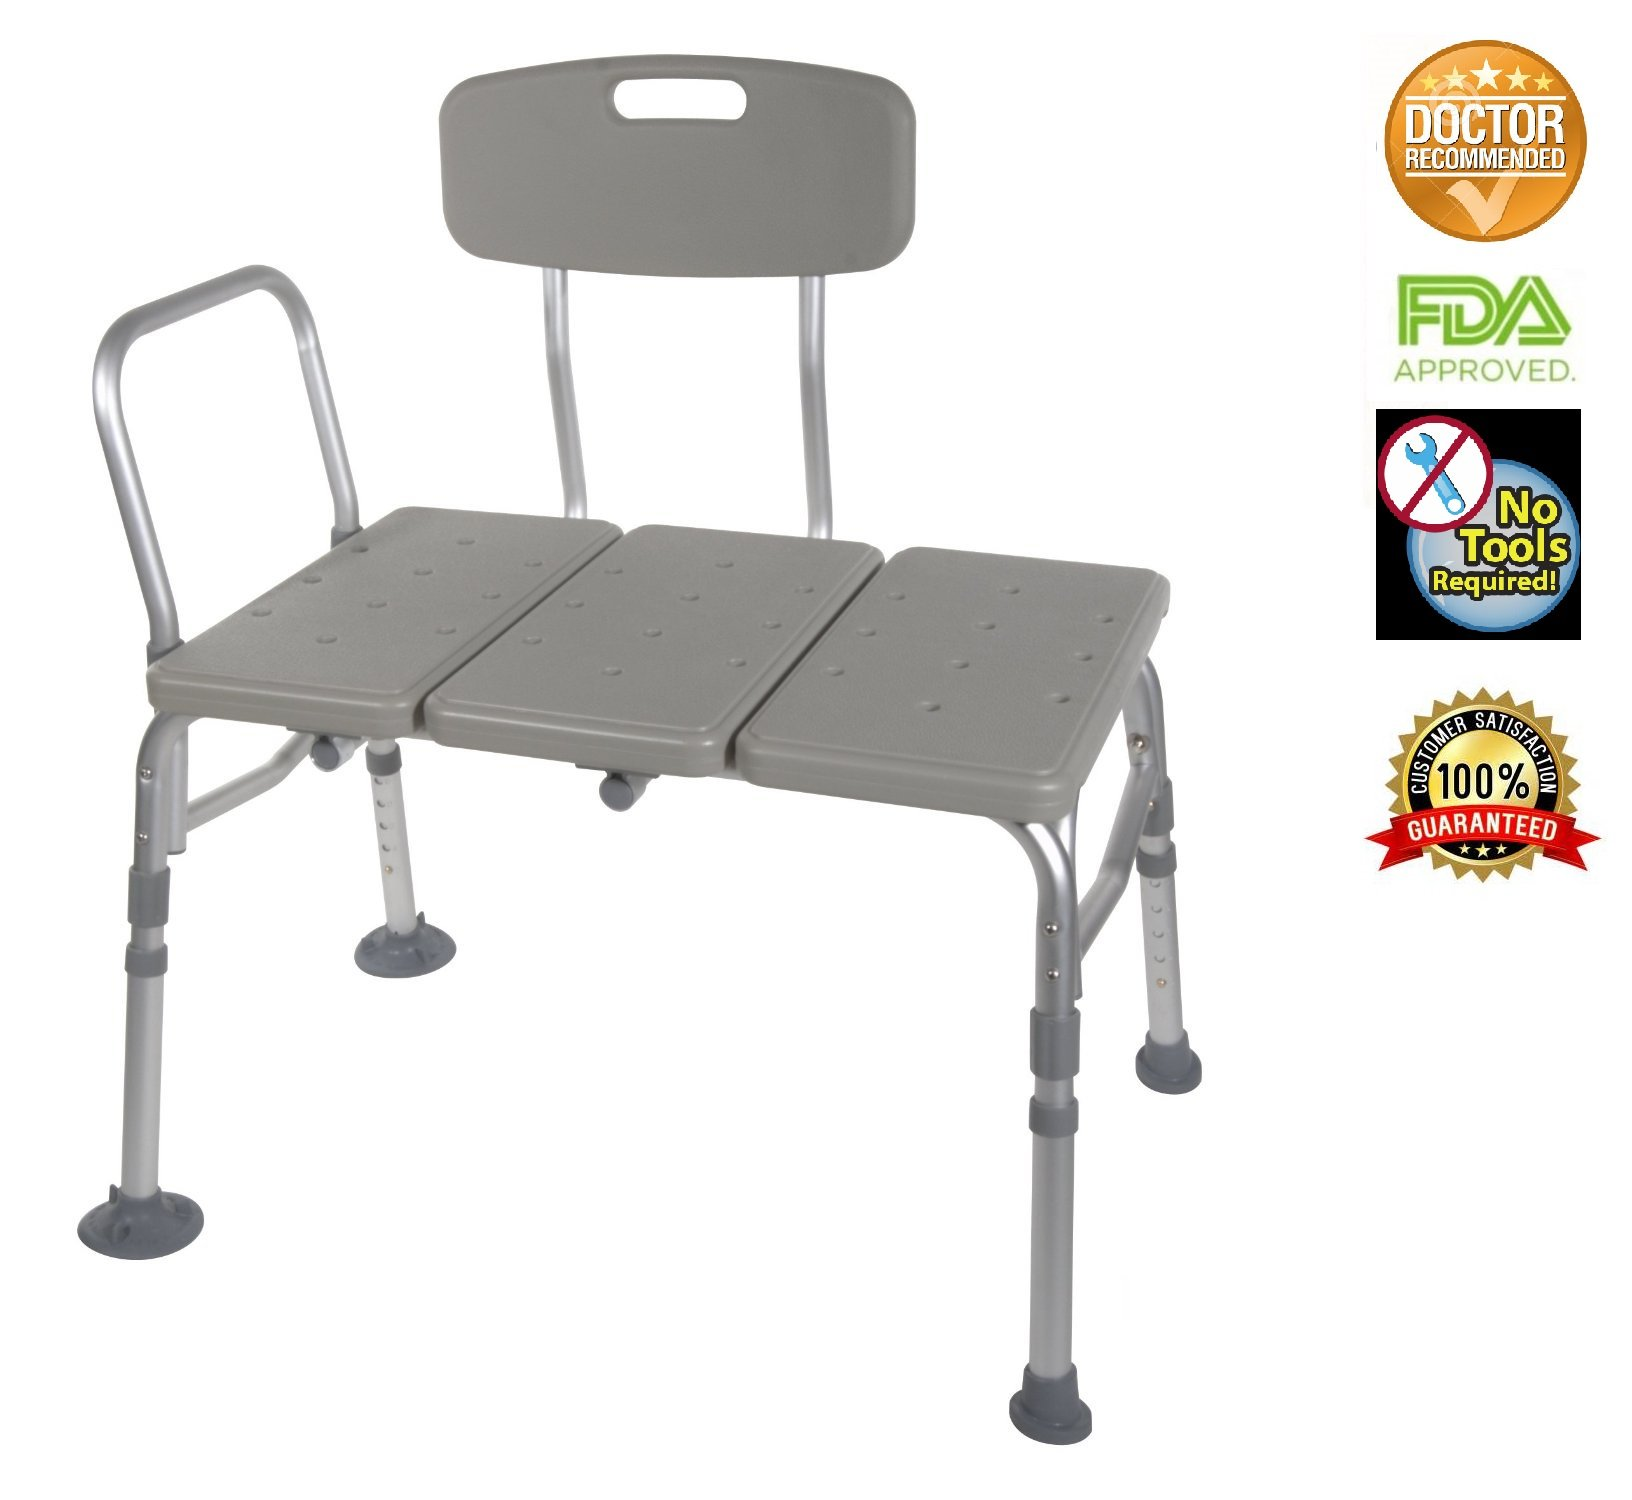 Transfer Bench Adjustable Height Legs, Lightweight Plastic Benches for Bath Tub and Shower with Back Non-slip Seat, Grey